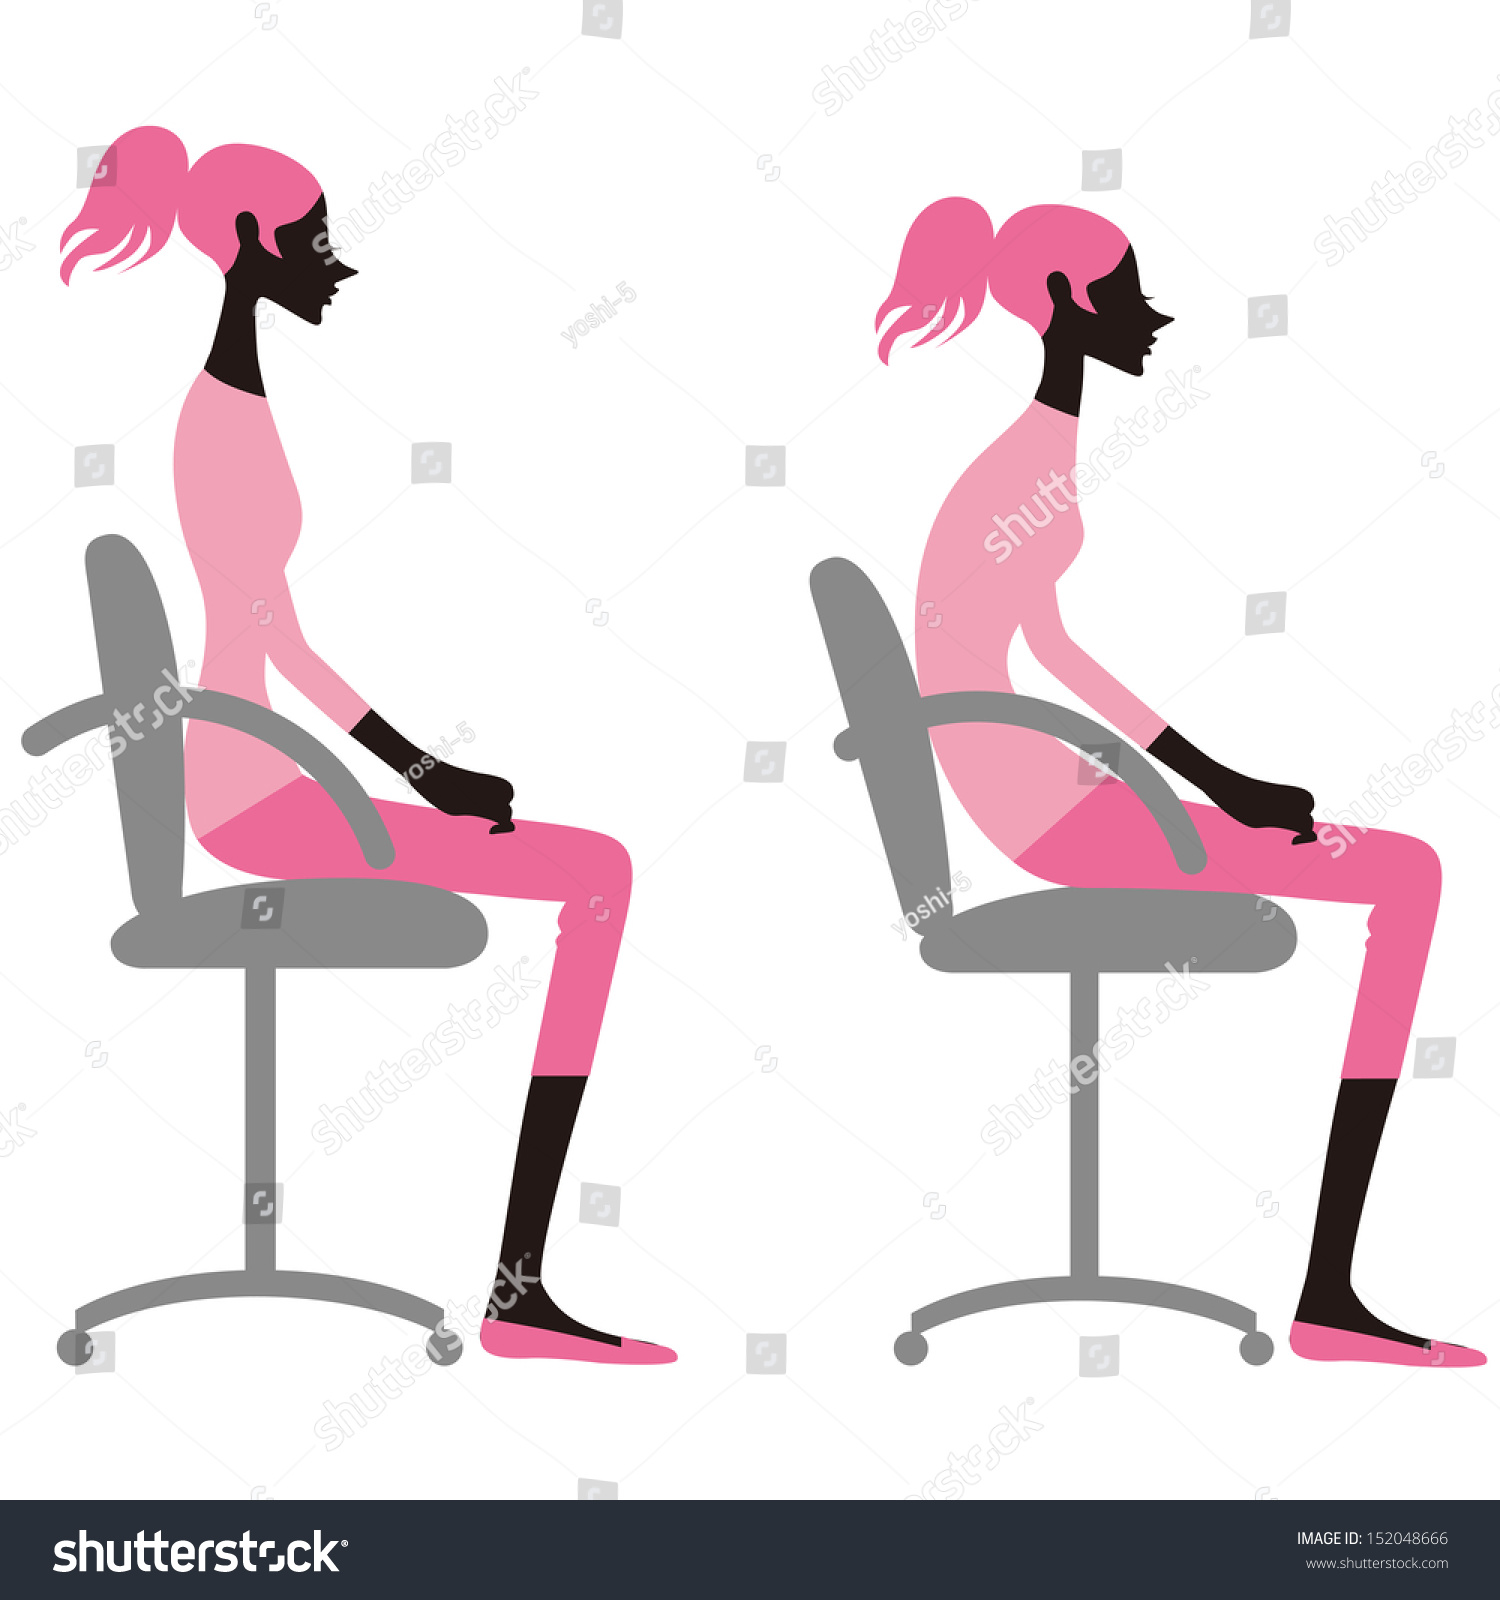 posture chair sitting desk won't stay up to sit down on stock vector illustration